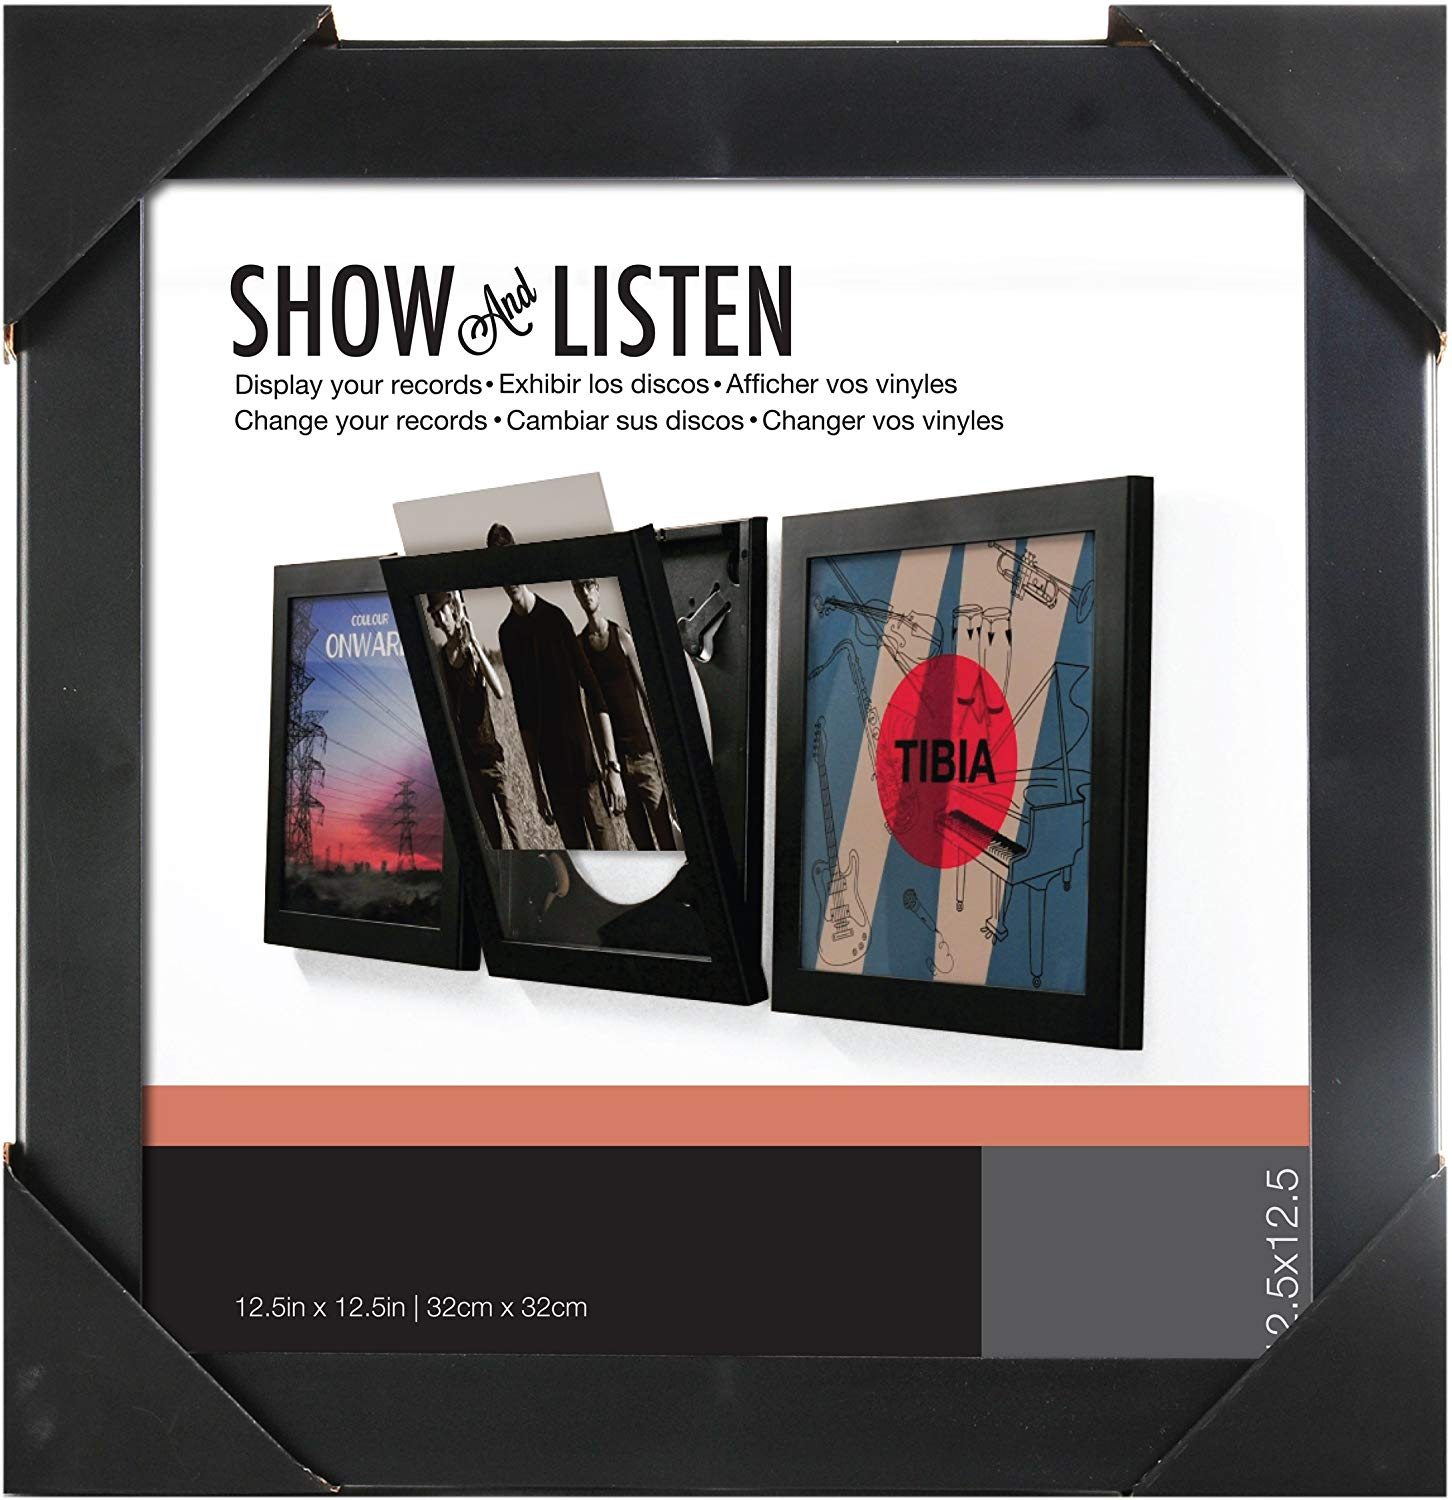 SHOW AND LISTEN LP FRAME BLACK [Accessories]